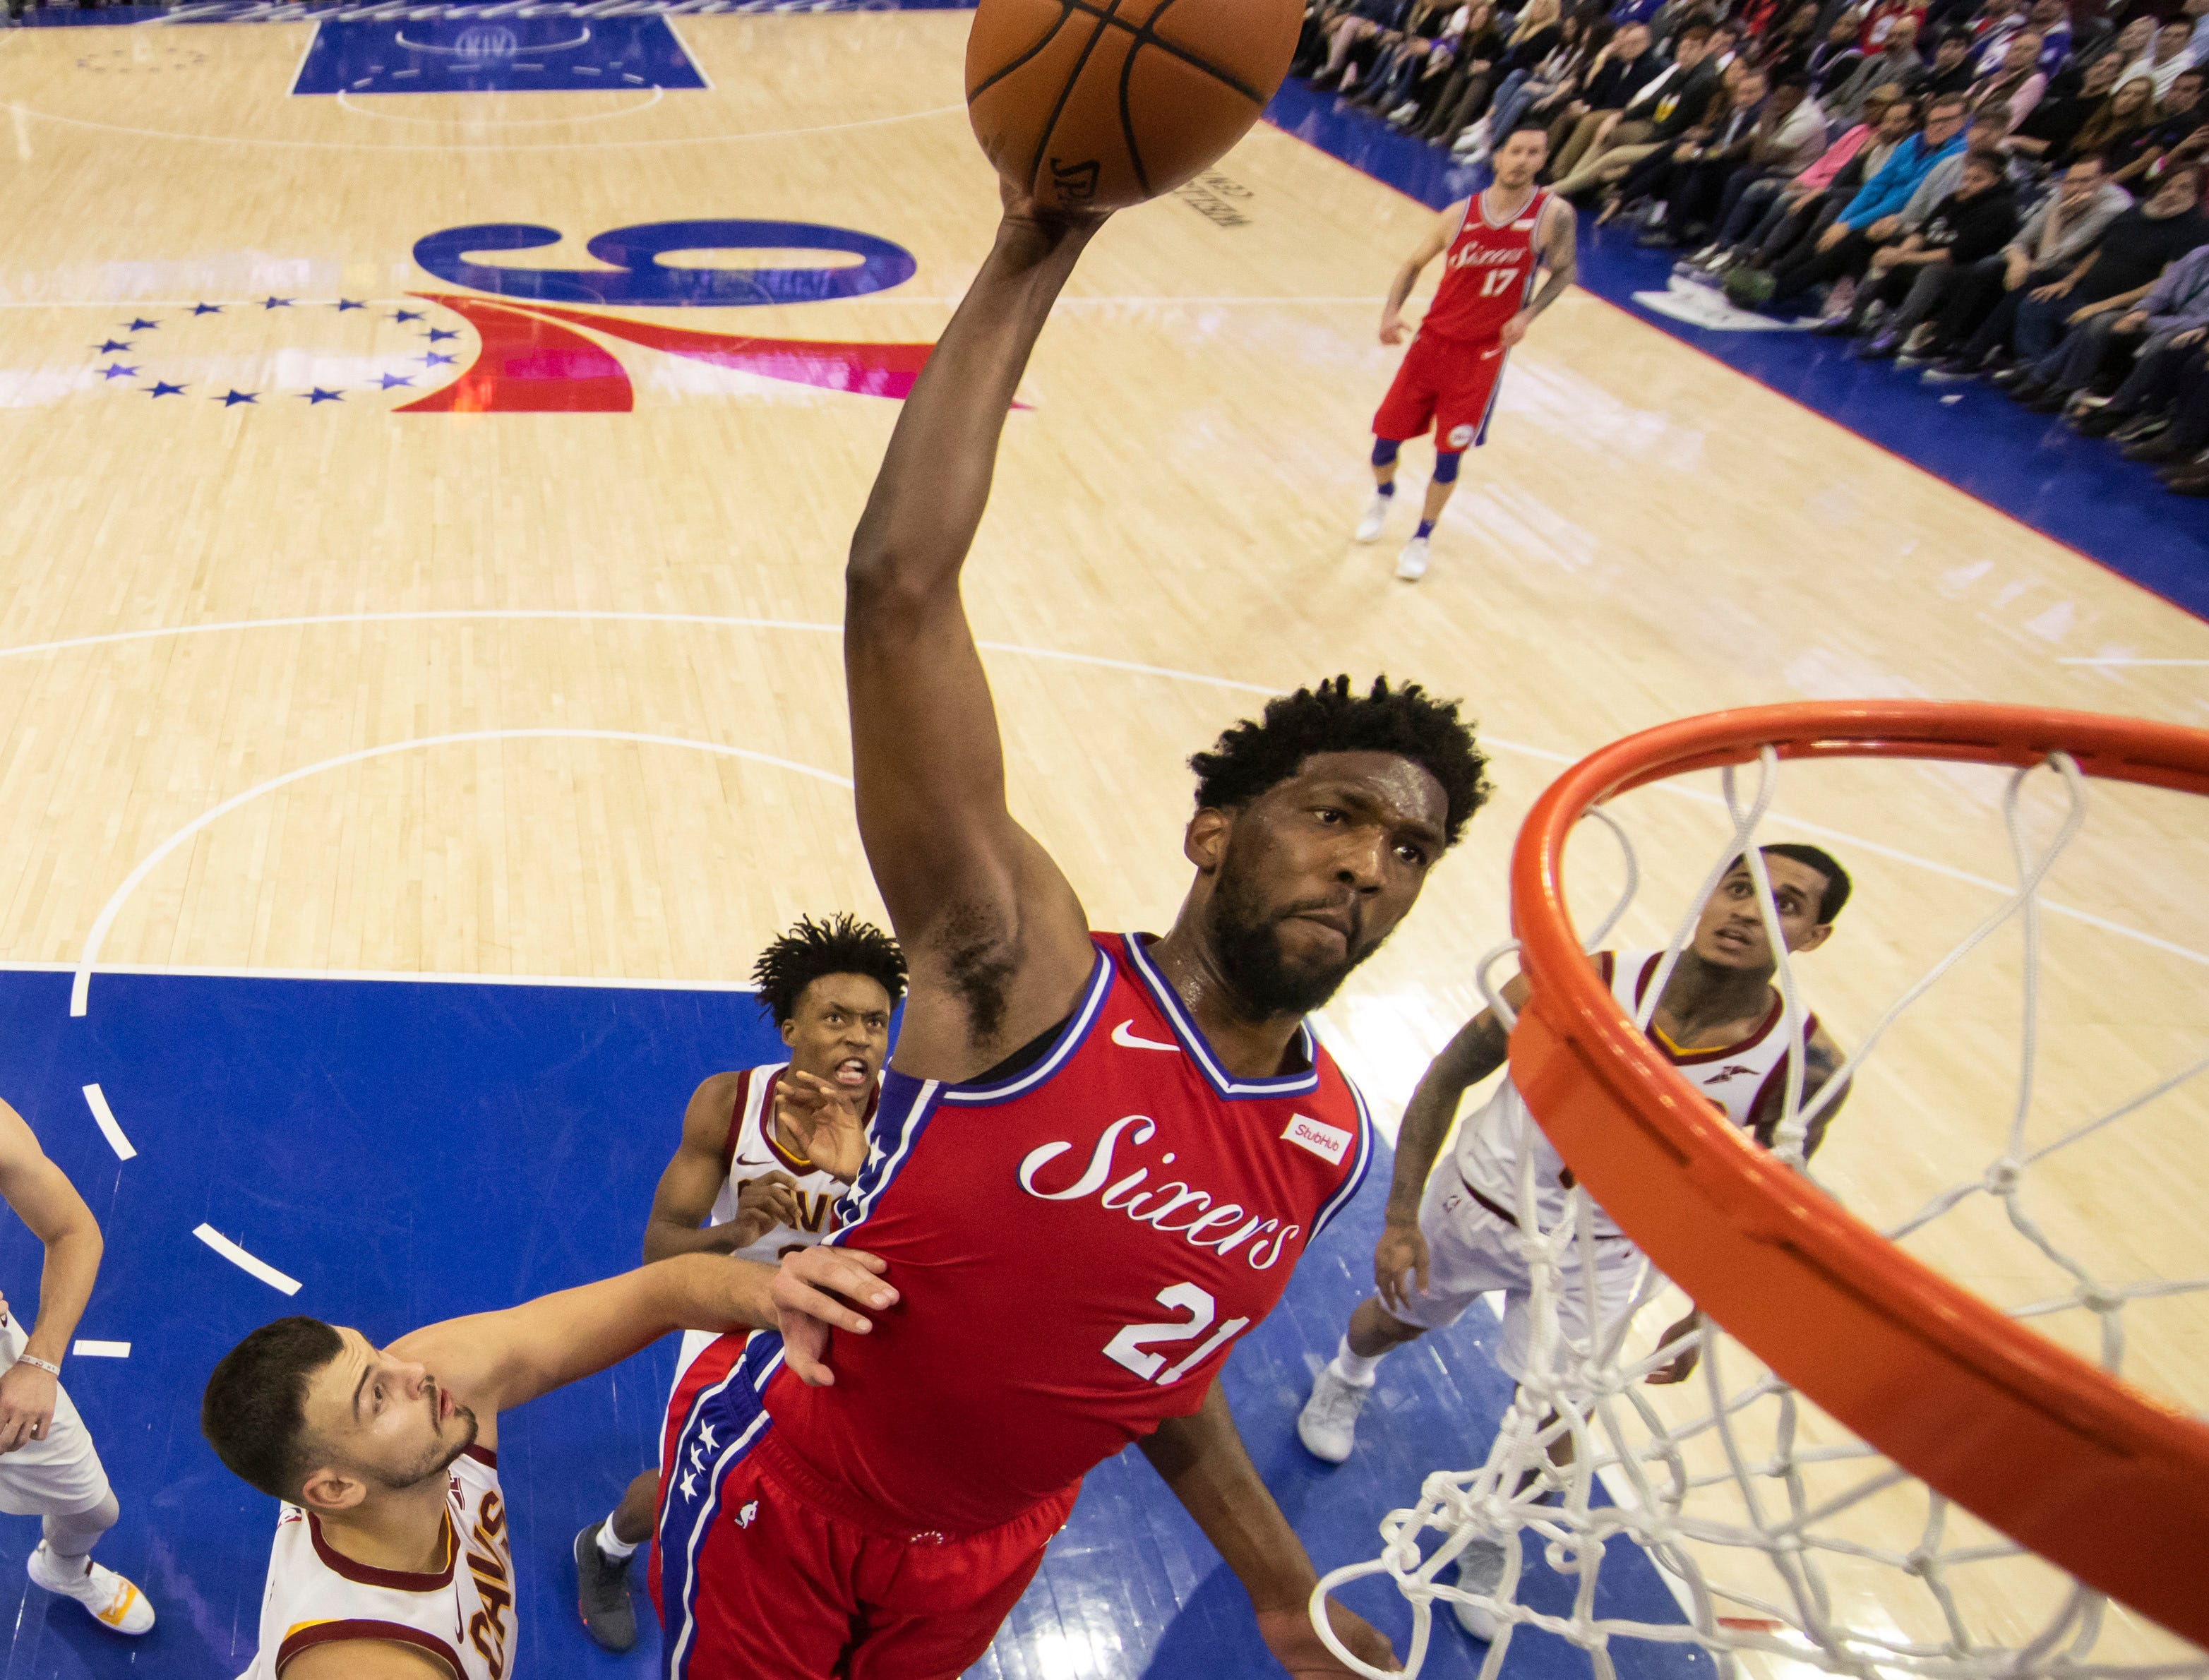 Philadelphia 76ers' Joel Embiid, of Cameroon, dunks against Cleveland Cavaliers' Ante Zizic, left, of Croatia, during the second half of an NBA basketball game, Tuesday, March 12, 2019, in Philadelphia. The 76ers won 106-99. (AP Photo/Chris Szagola)